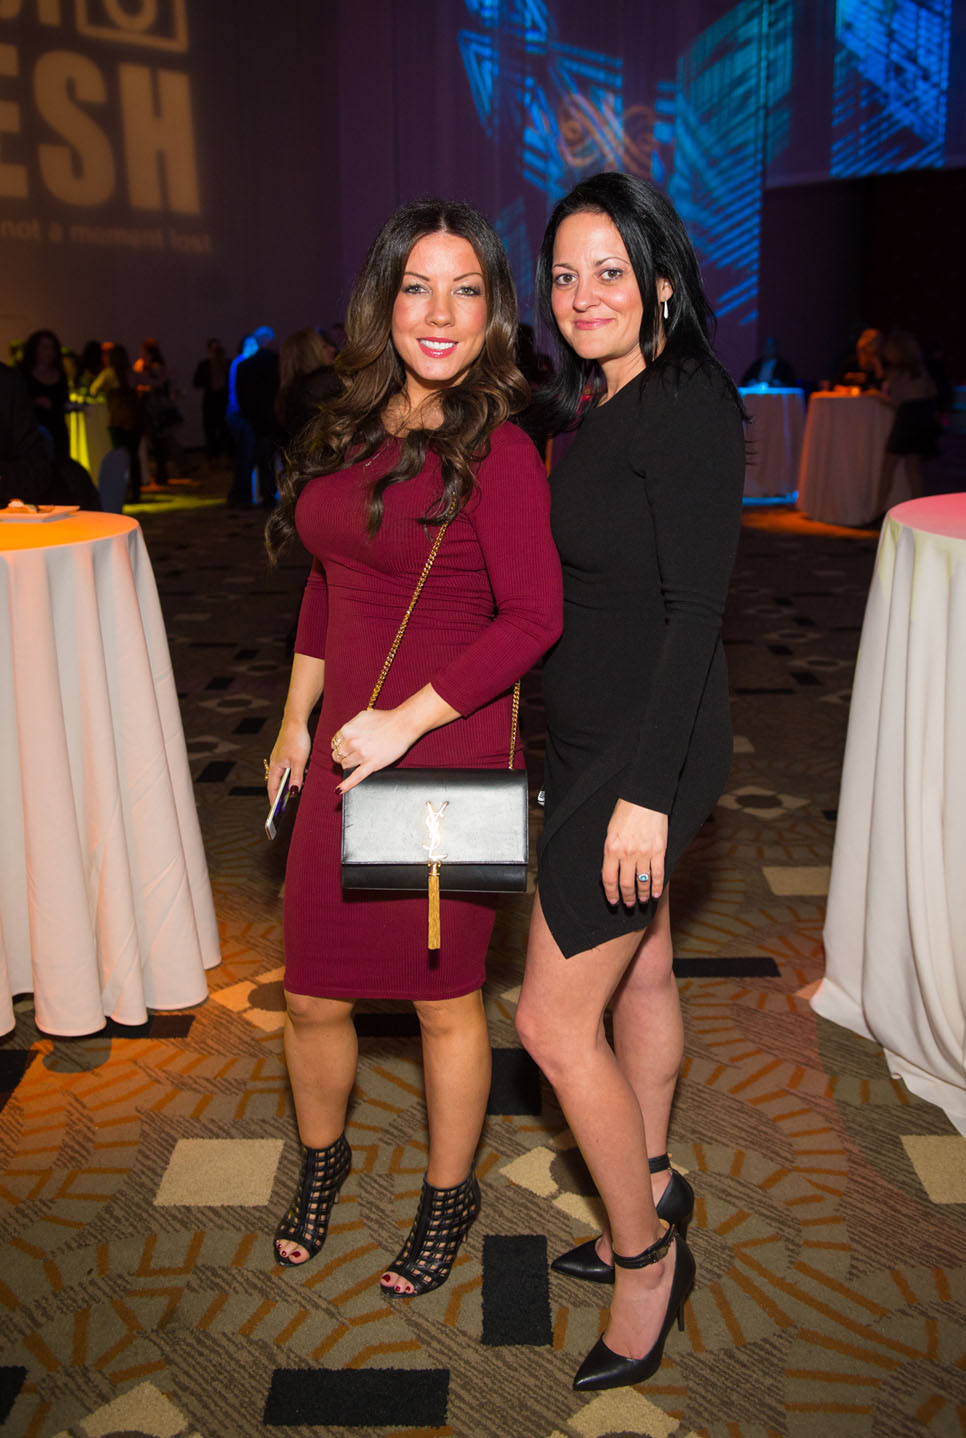 2015-12-09 ReMax Corpoarte Event - The Borgata - Atlantic City NJ - Photo Sesh - 2015-5047.jpg